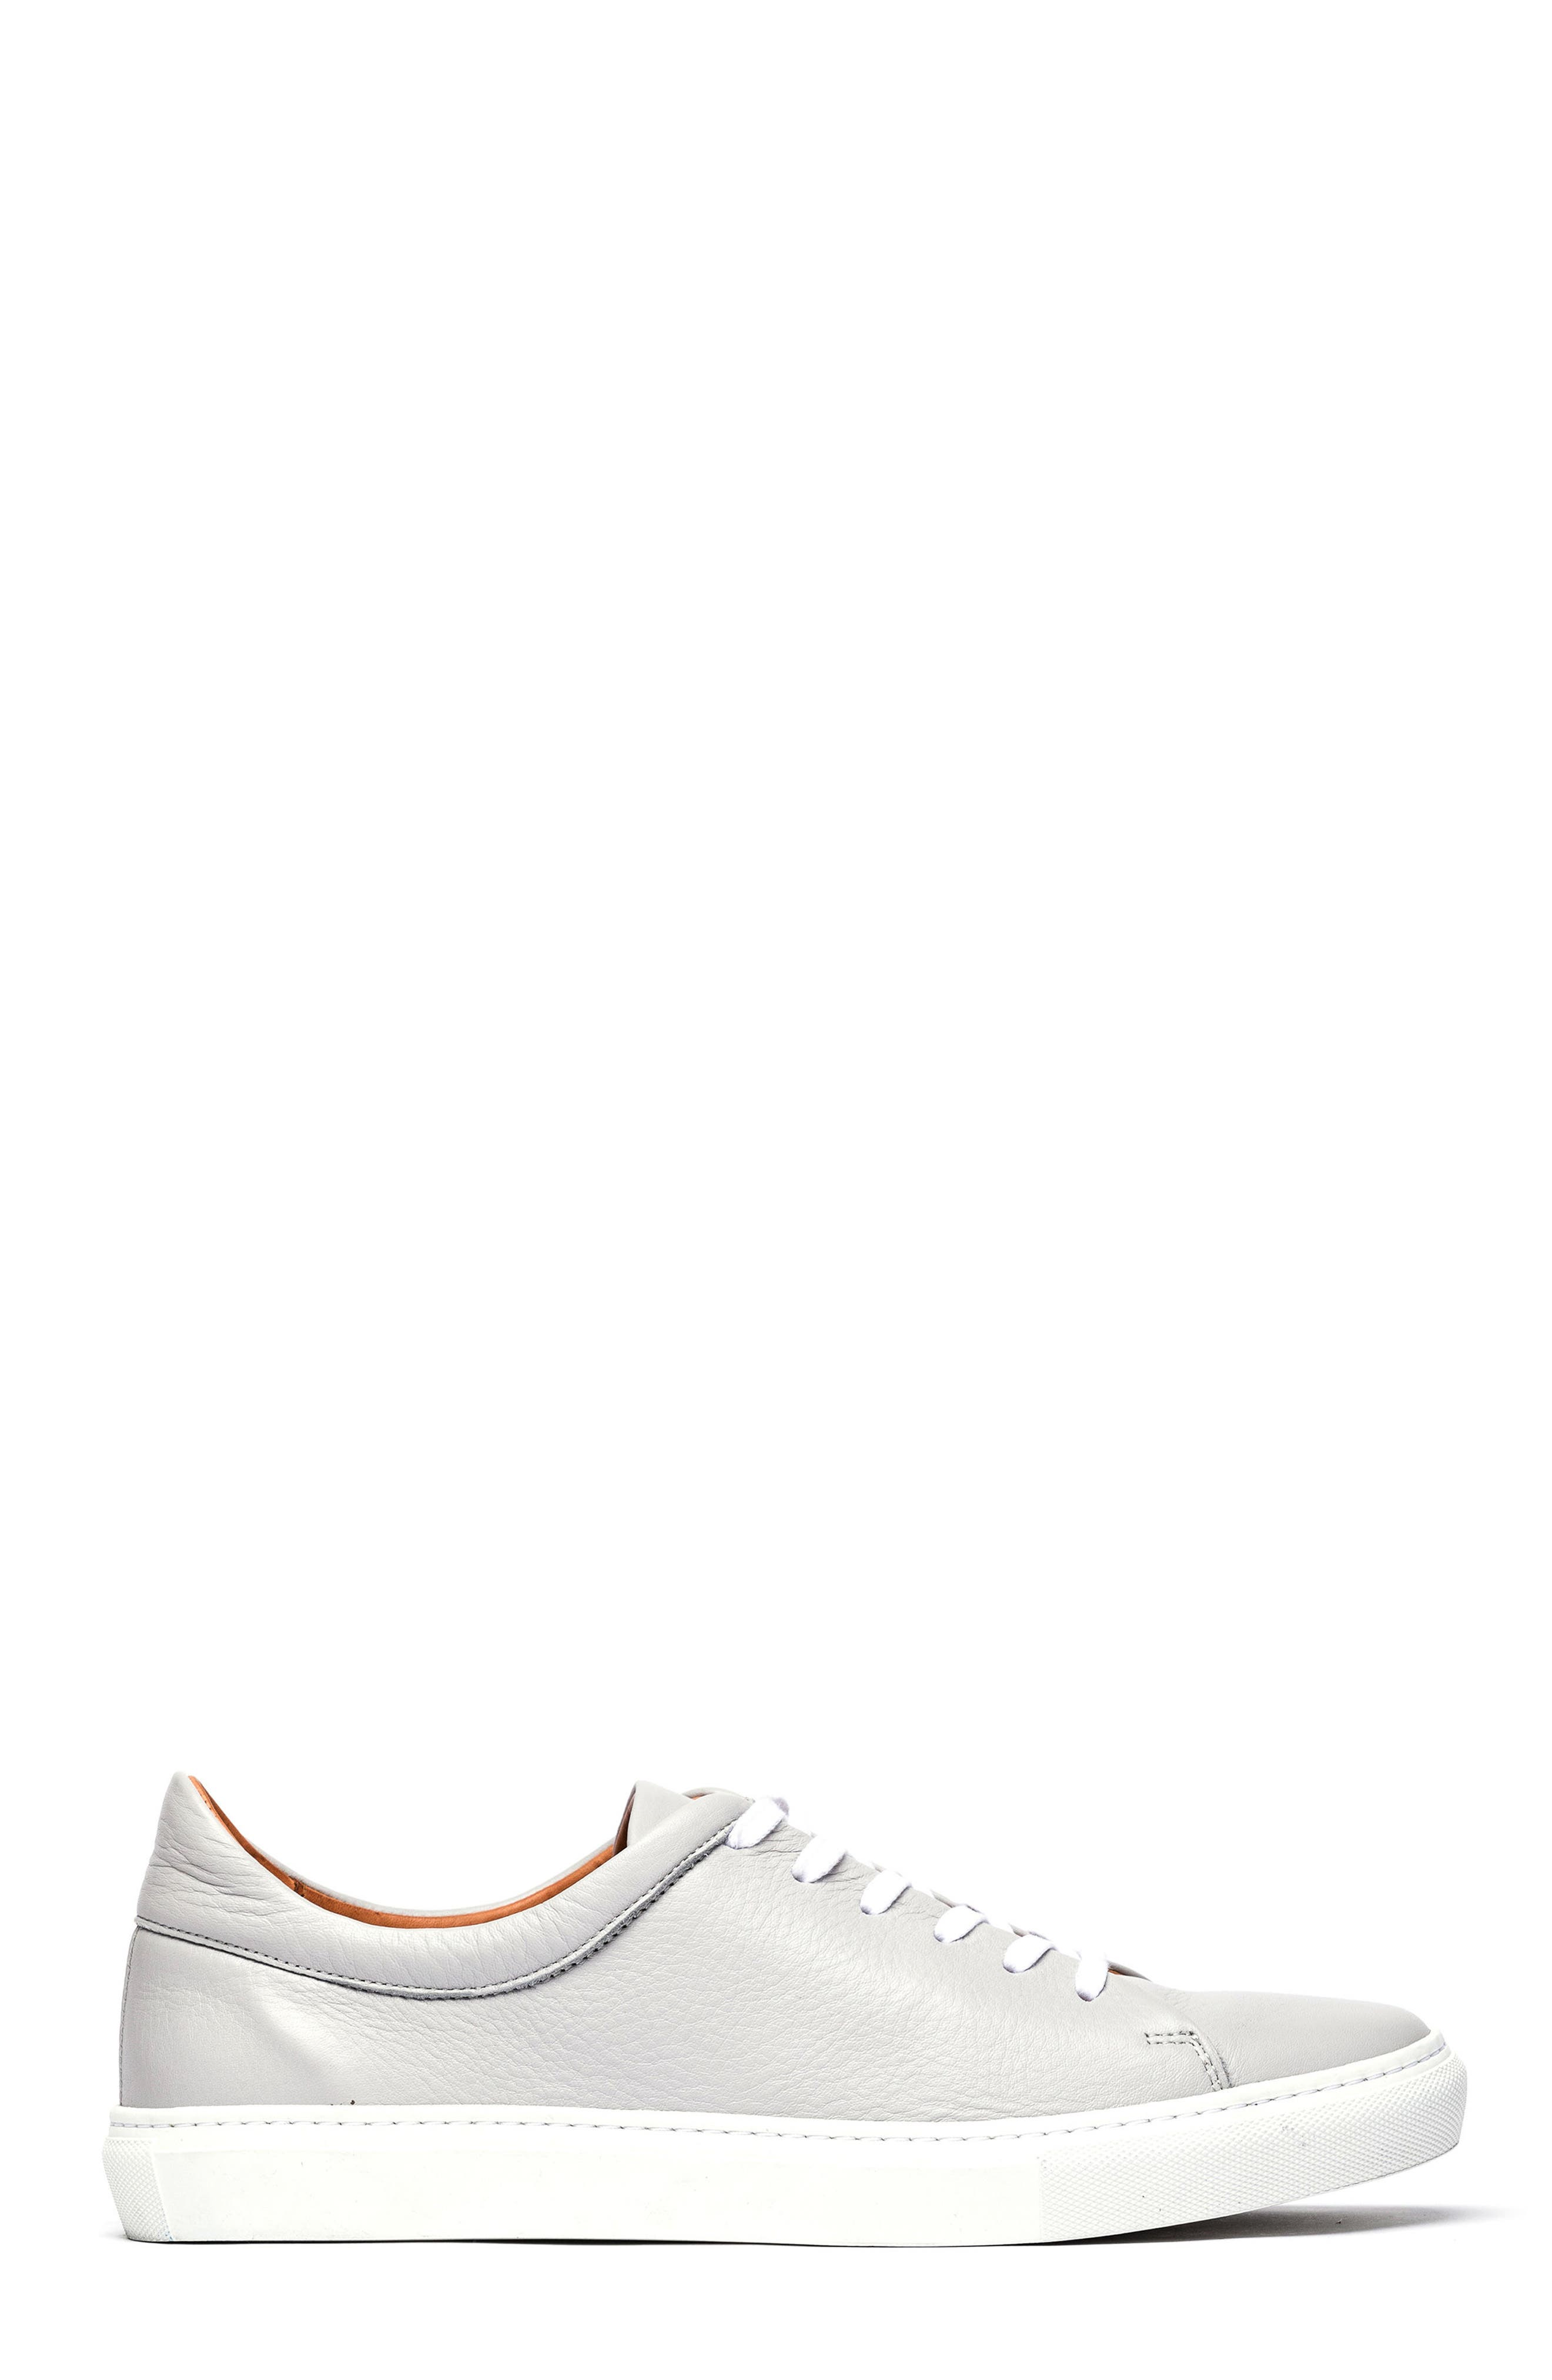 Windemere Sneaker,                             Alternate thumbnail 3, color,                             Stone Leather